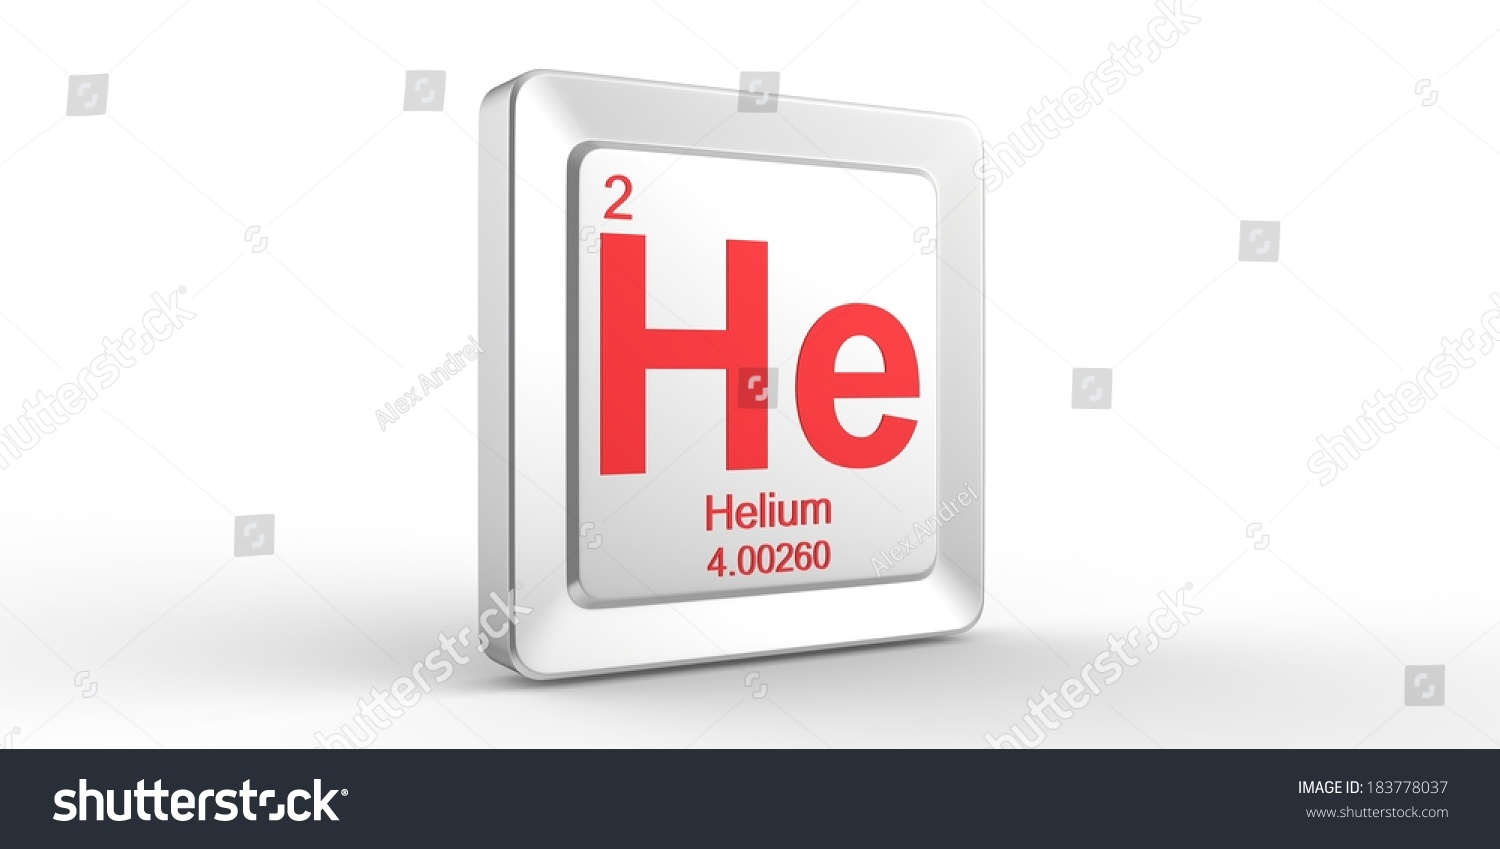 Cesium symbol periodic table images periodic table images plutonium symbol periodic table images periodic table images plutonium on periodic table gallery periodic table images gamestrikefo Image collections